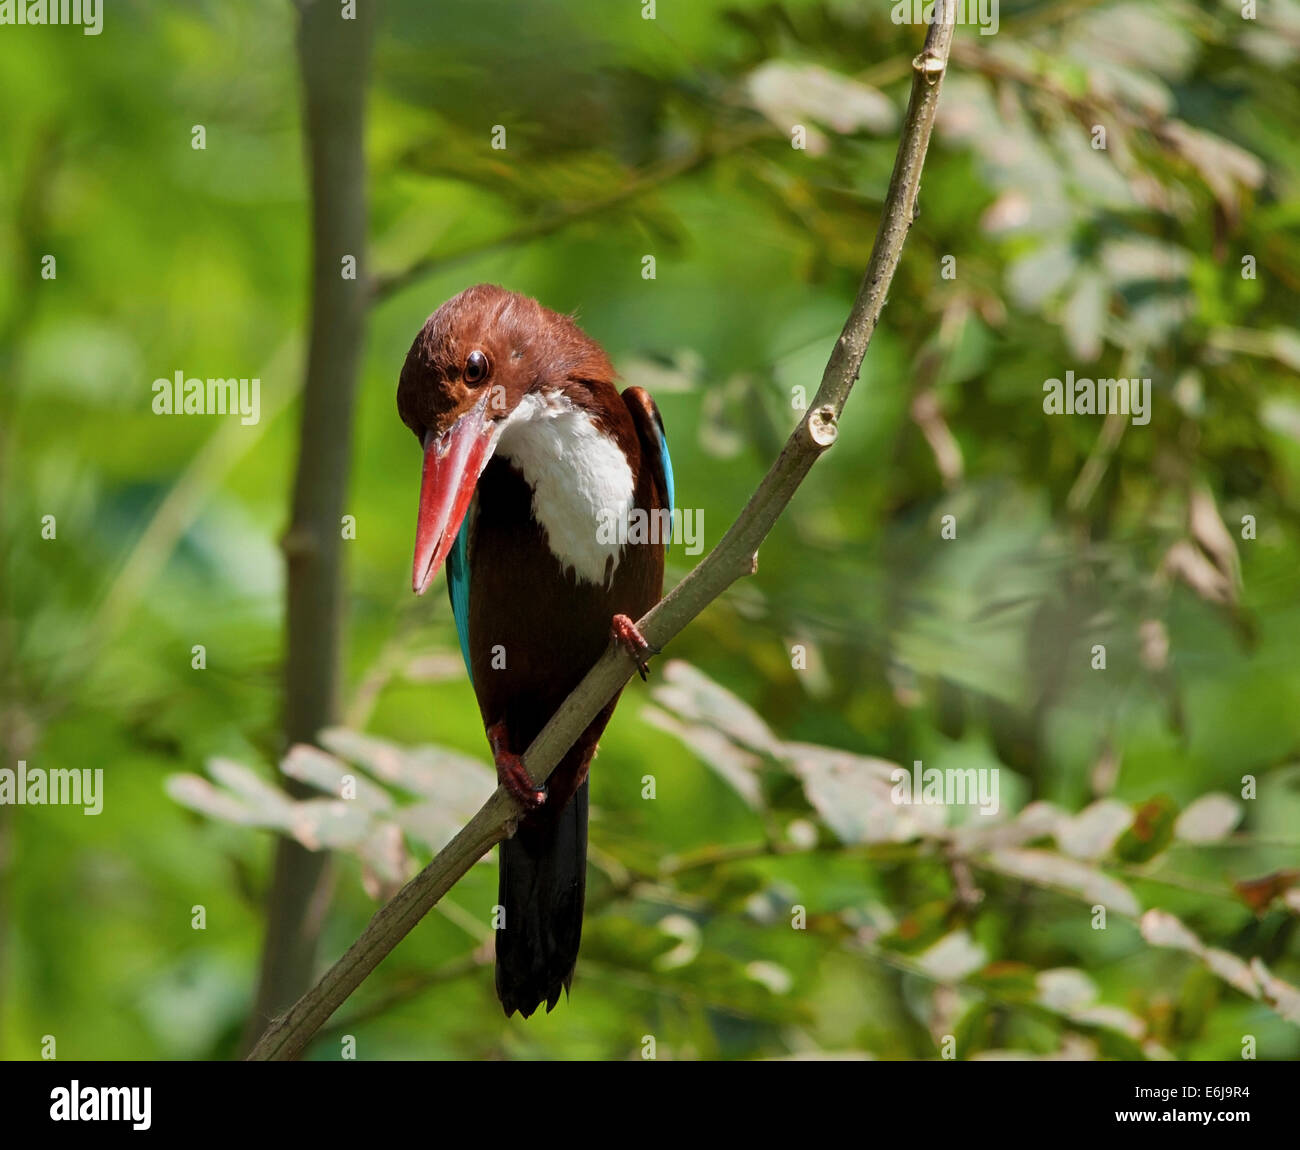 White Breasted Kingfisher in Jungle - Stock Image